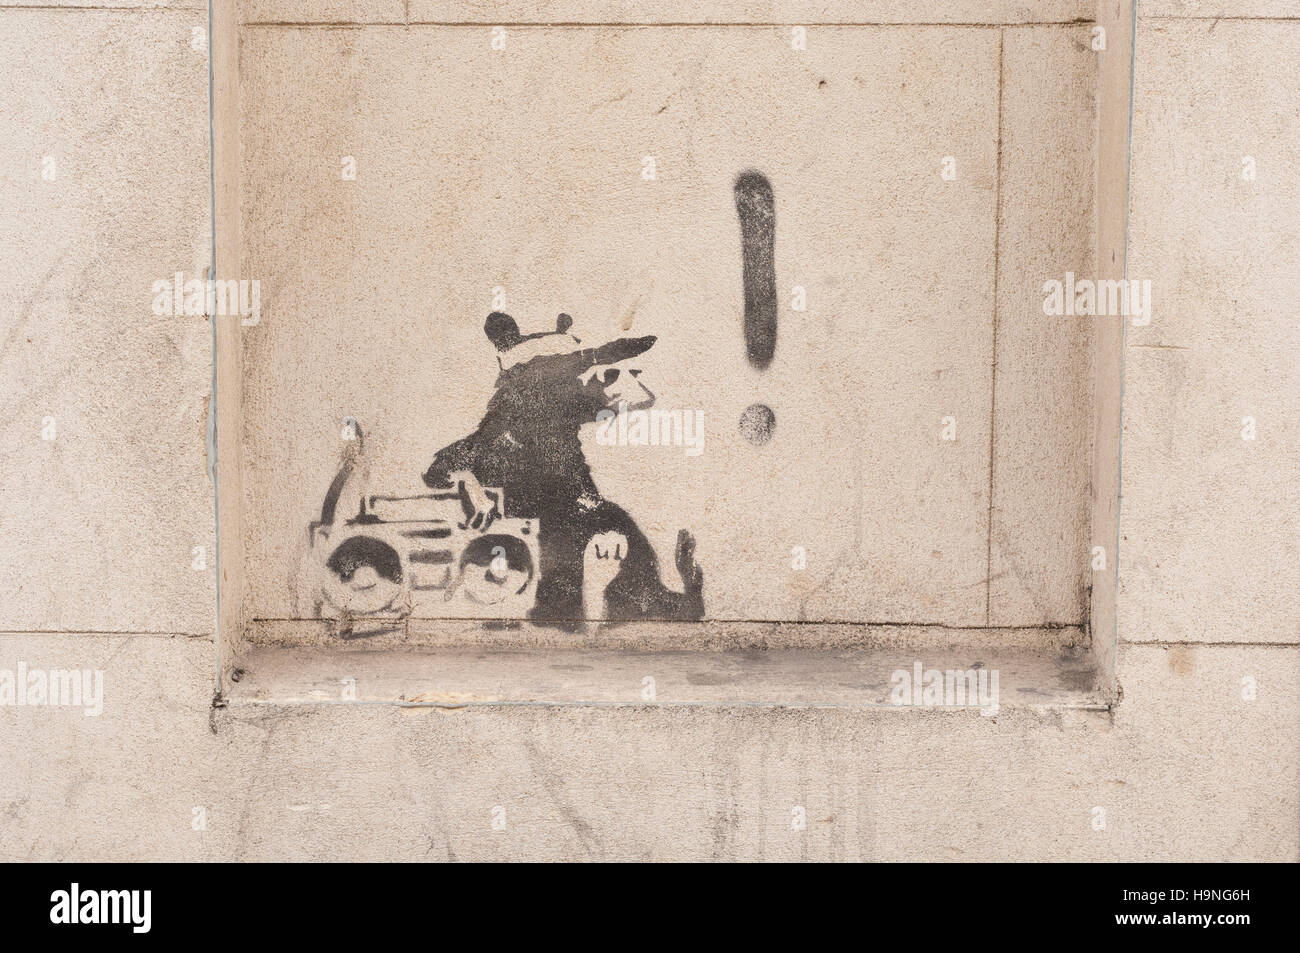 A ghetto blaster rat by the Street Artist Banksy, Commercial Street, London EC2, Britain. - Stock Image